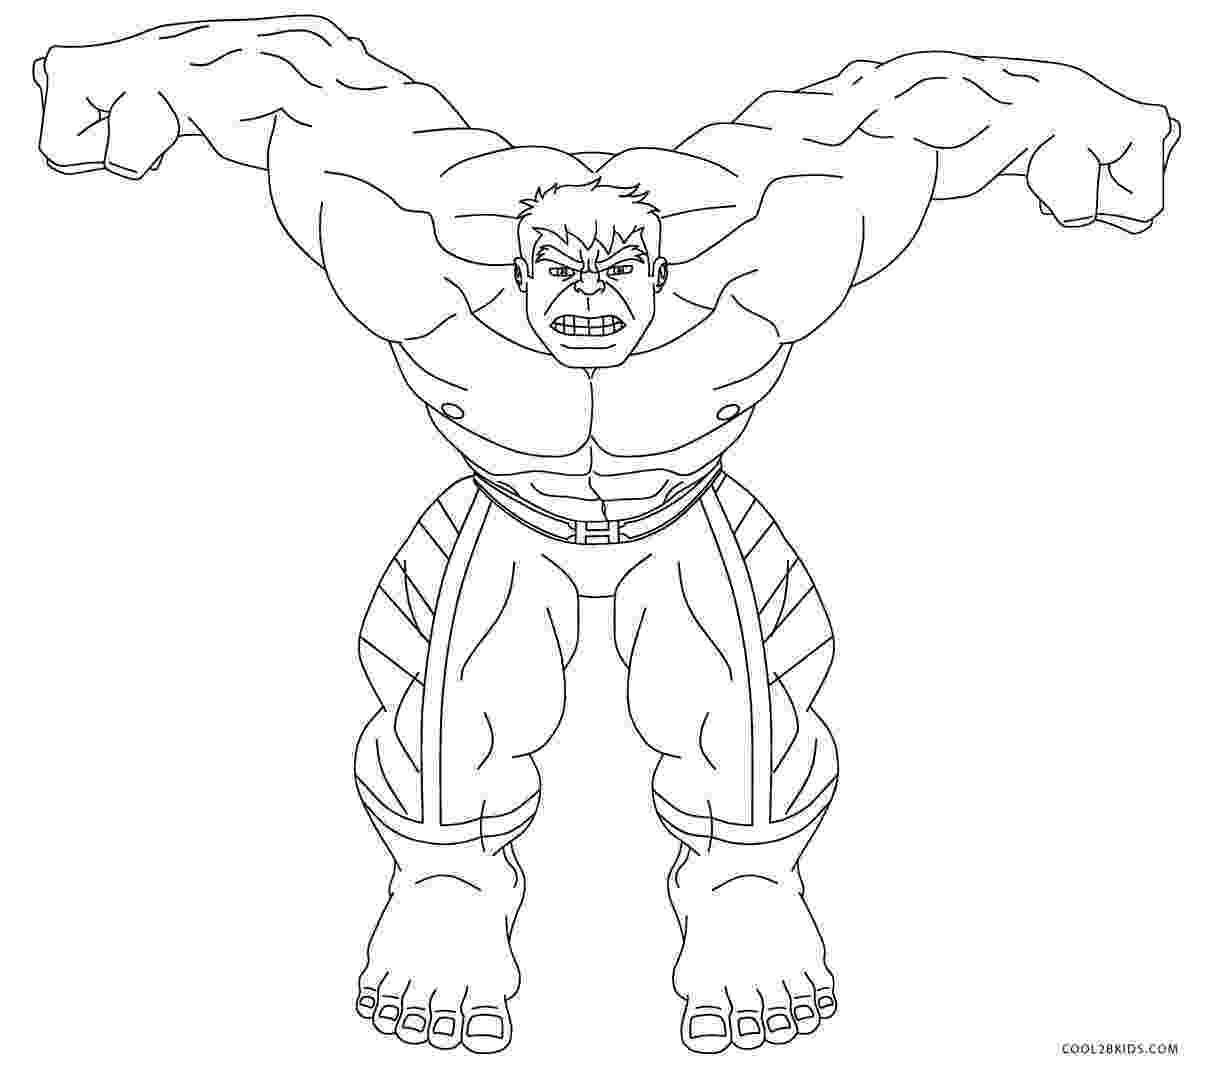 incredible hulk pictures to color free printable hulk coloring pages for kids cool2bkids to color pictures incredible hulk